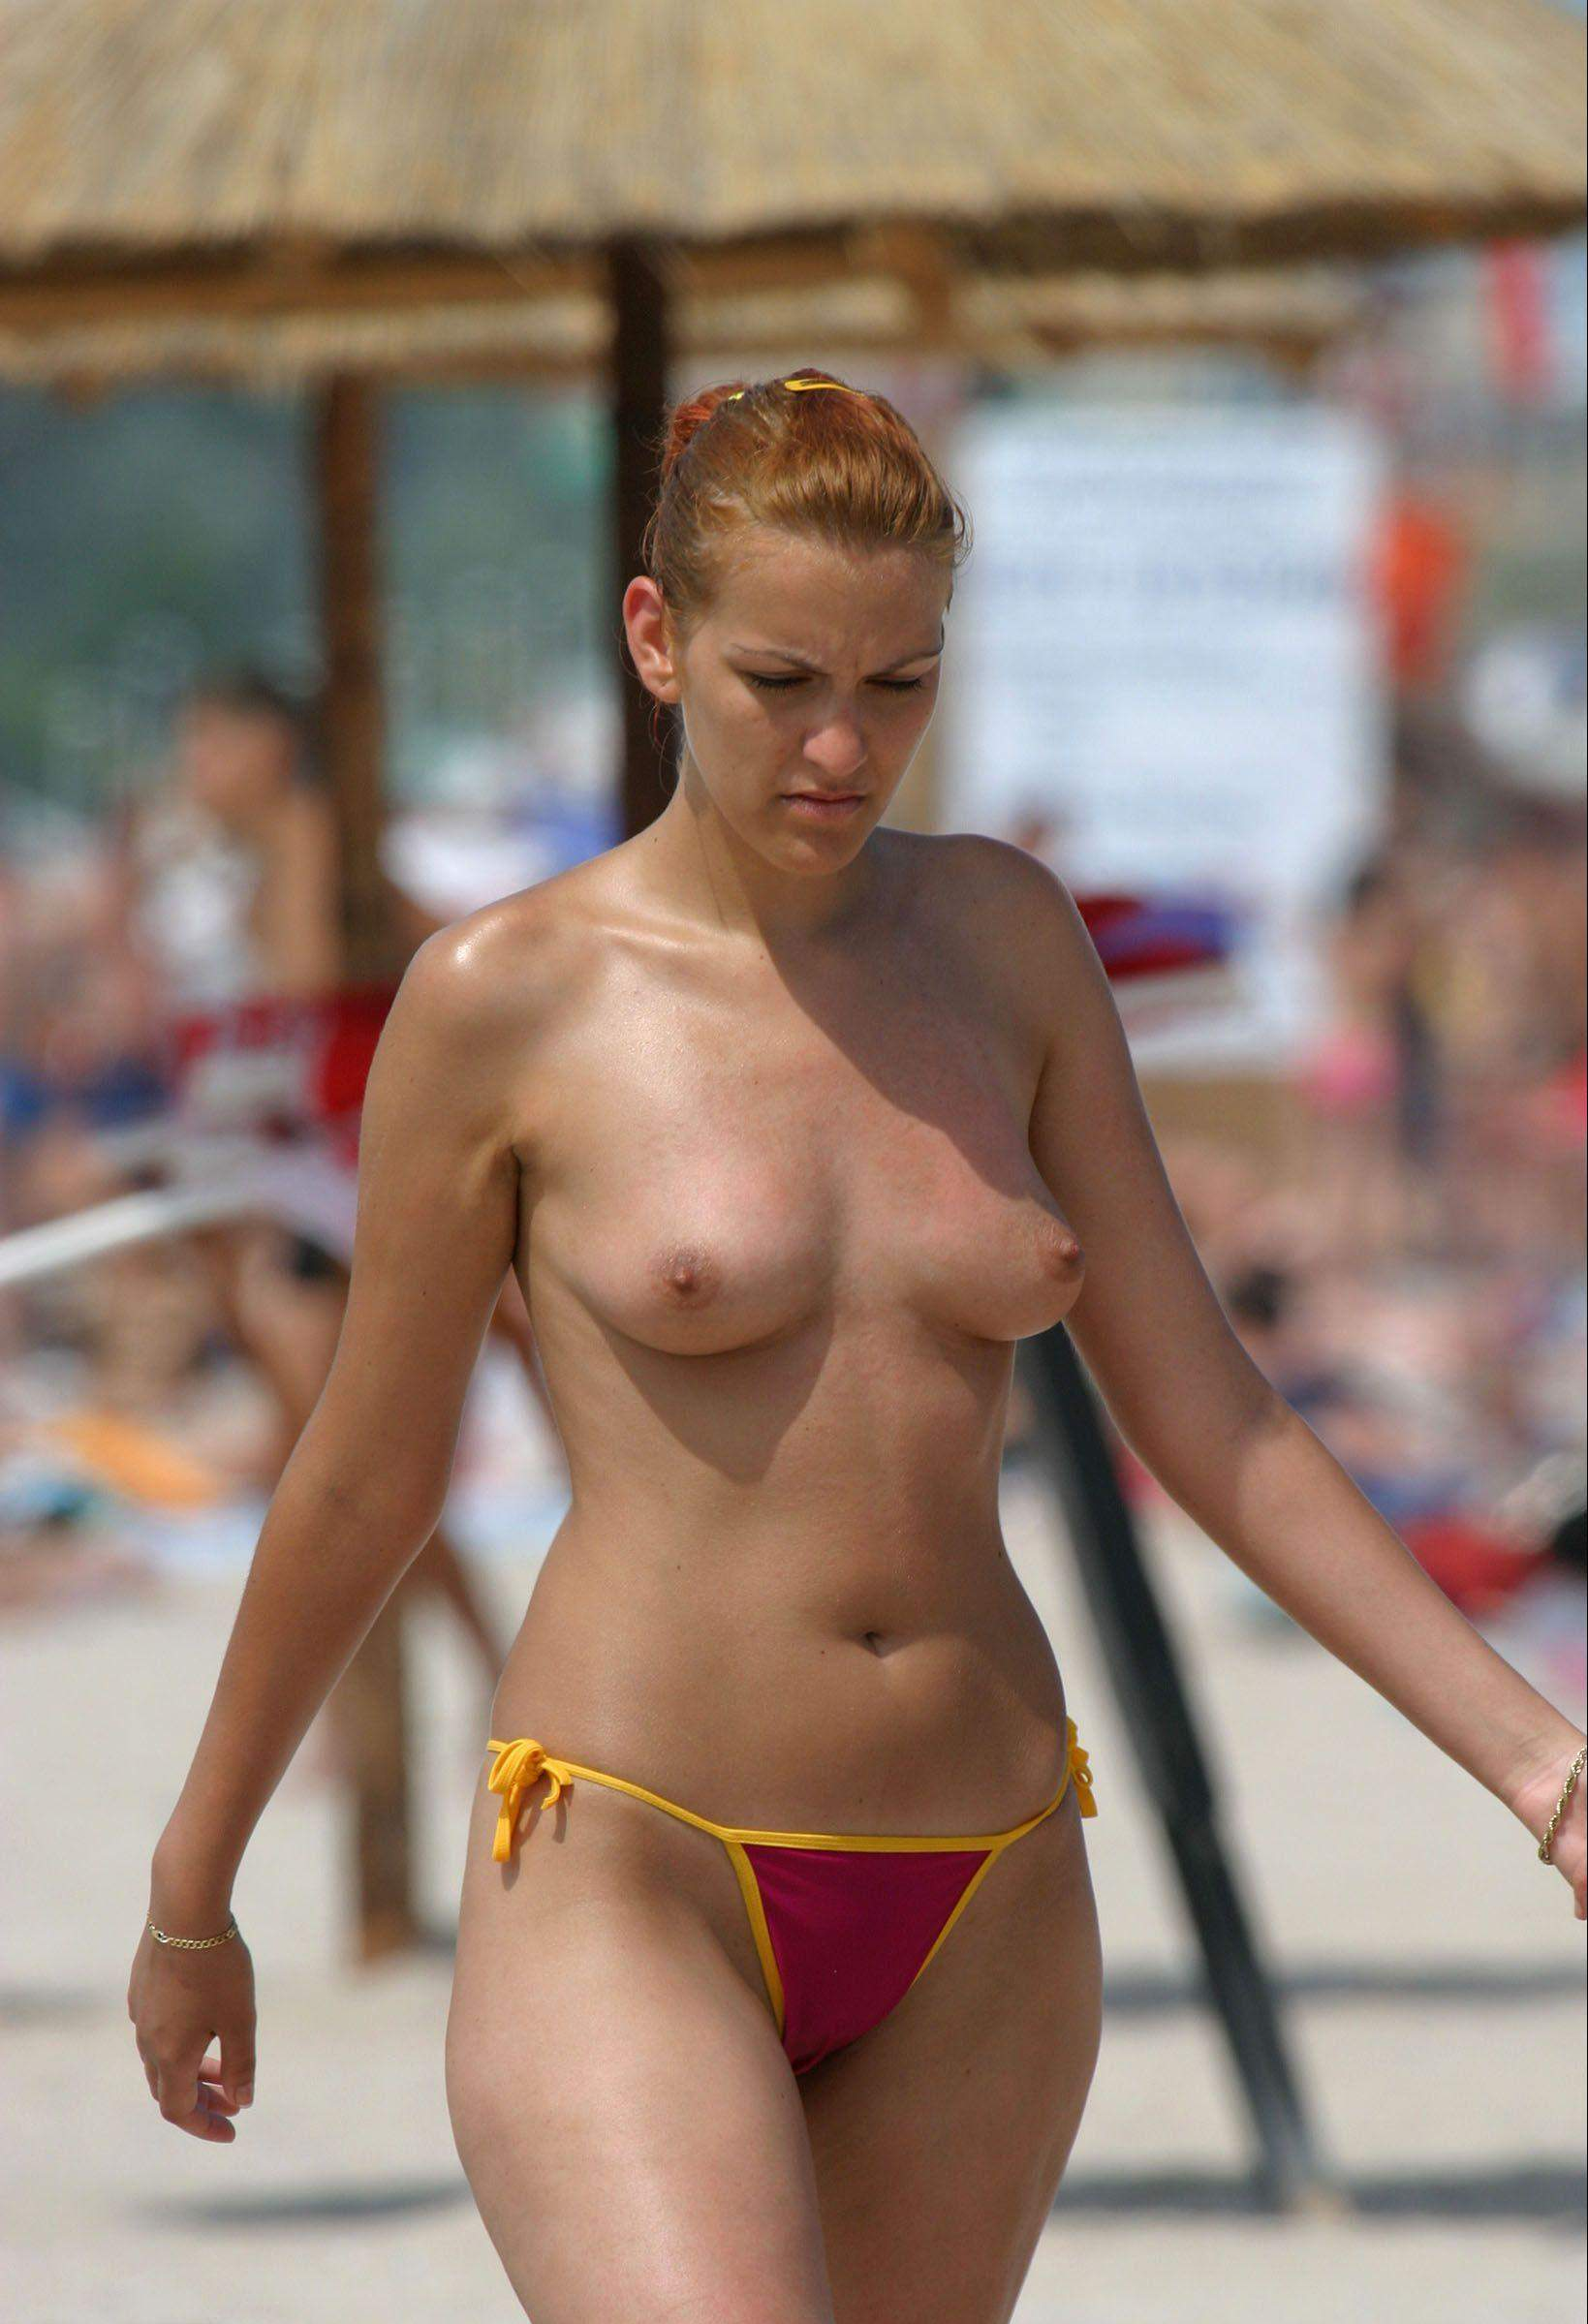 Mature women brown nipples nude beach reply)))